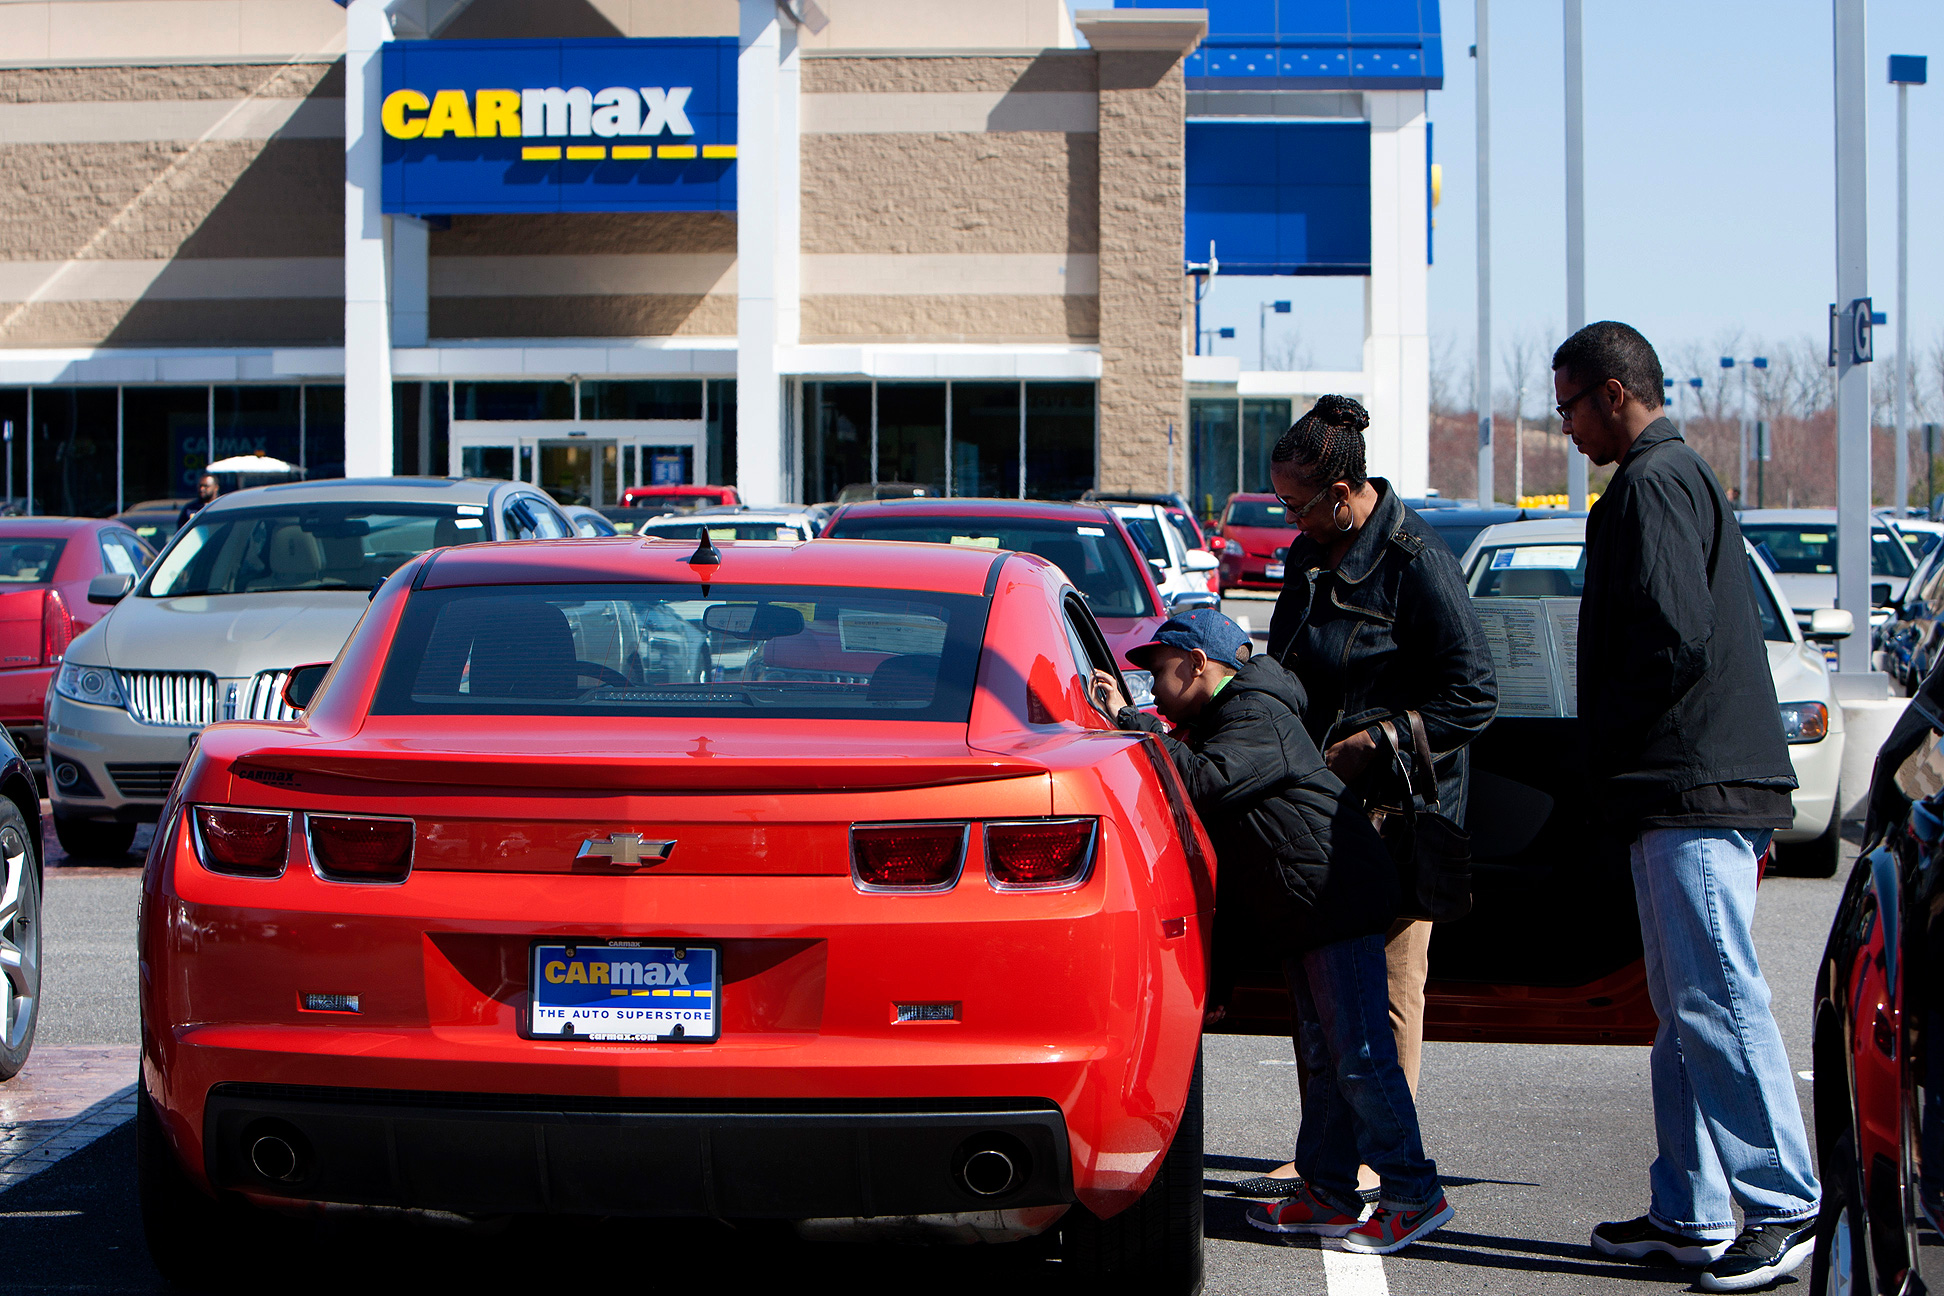 Carmax Originates 15 Million In Subprime Loans In Latest Quarter